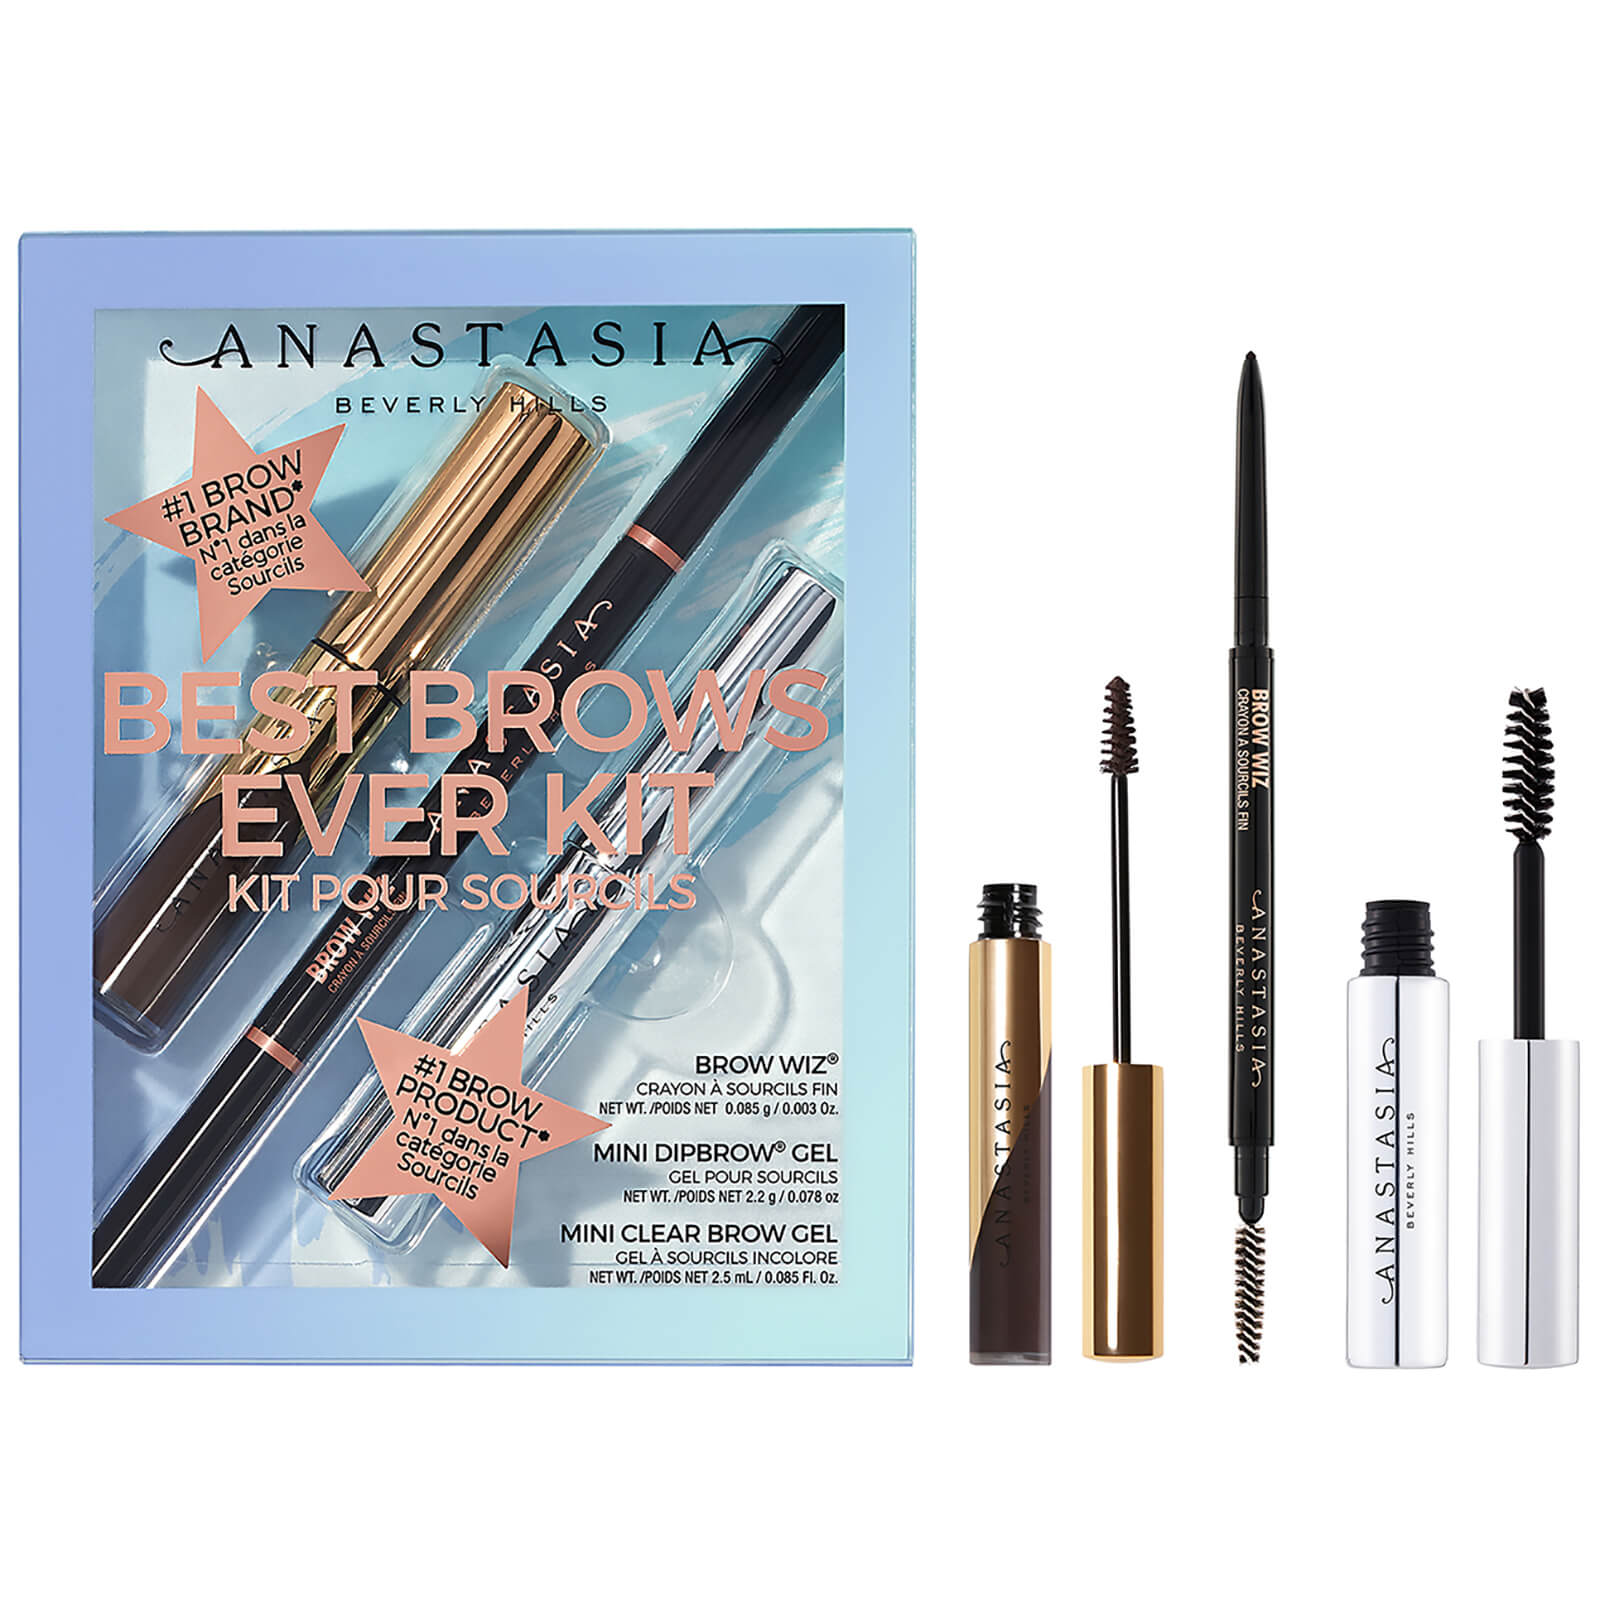 Anastasia Beverly Hills Brow Kit #2 Best Brows Ever 11.85g (Various Shades) - Ebony